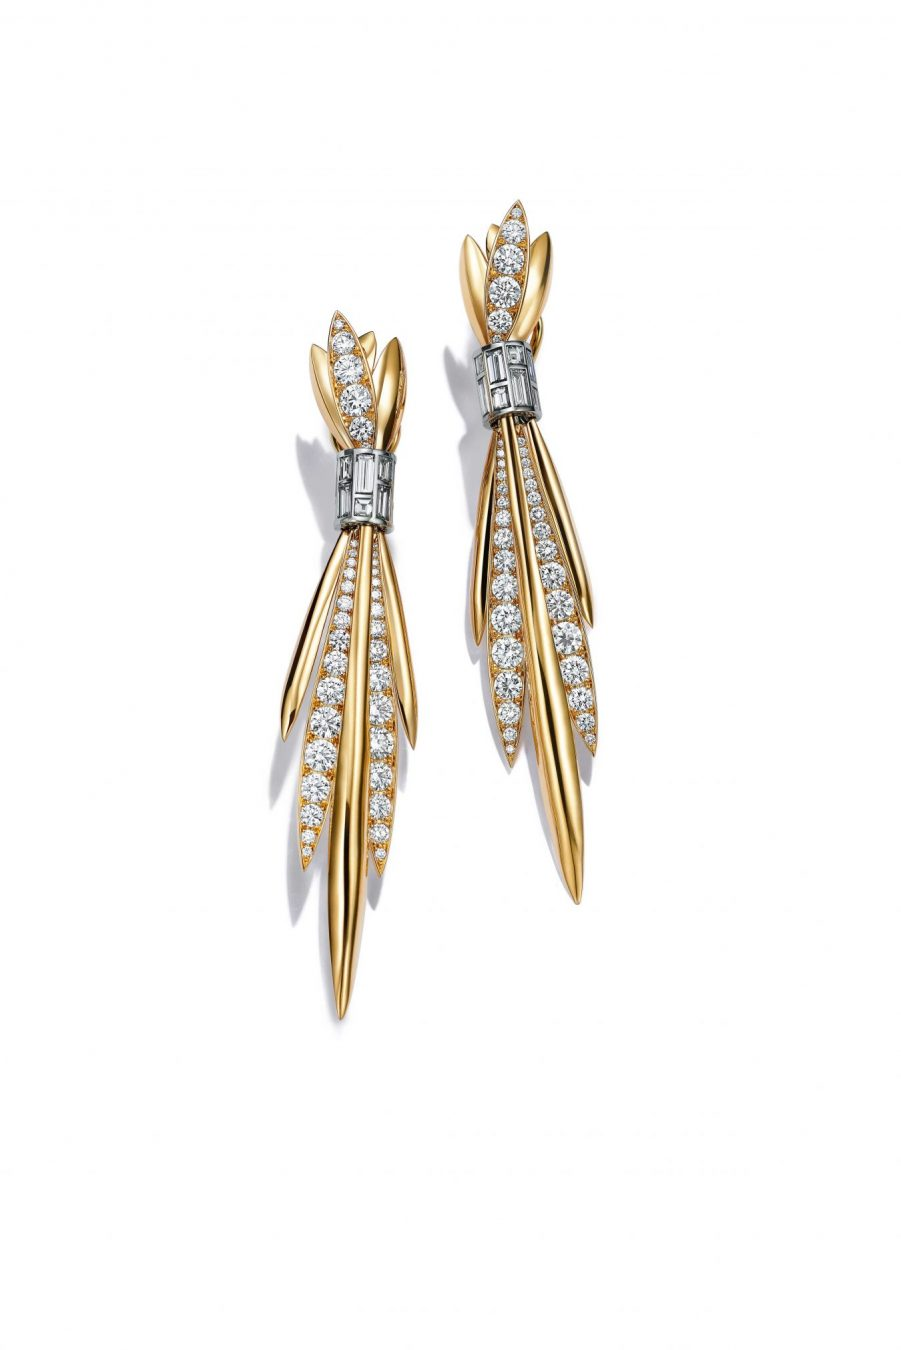 99064a289686 Earrings in platinum and 18k yellow gold with baguette and round brilliant  diamonds